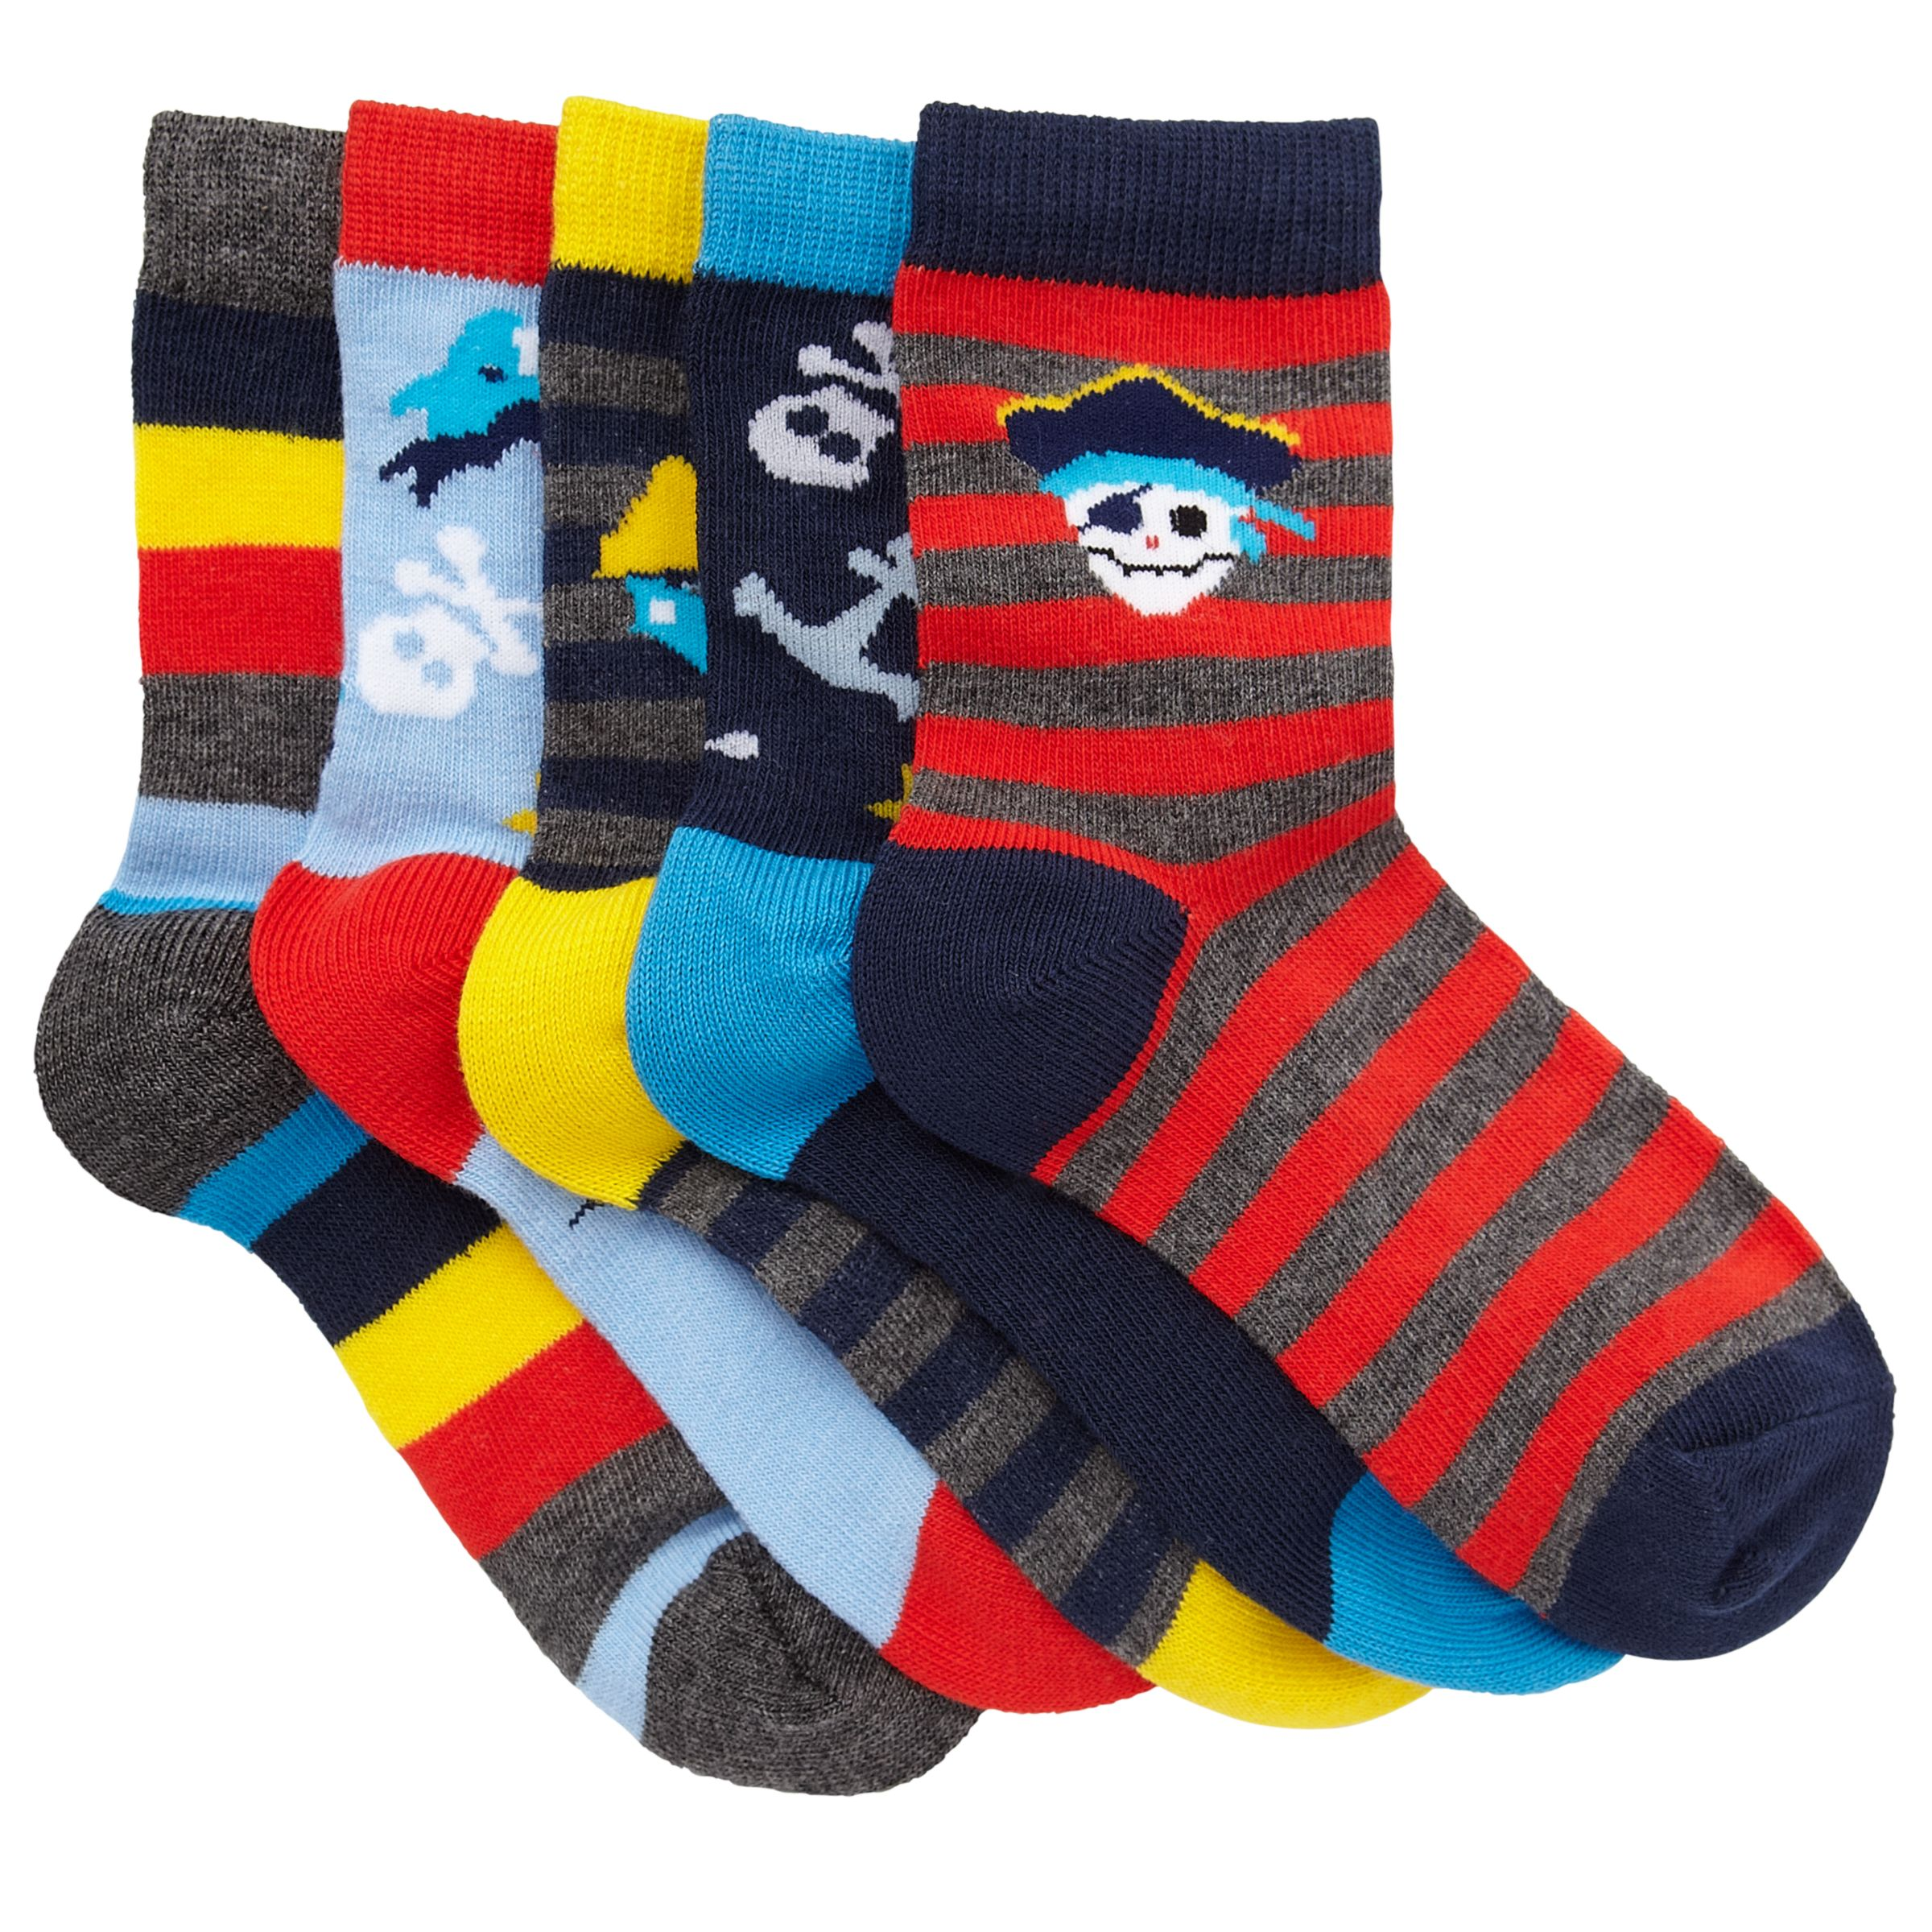 John Lewis Boy Pirate Socks, Pack of 5, Multi